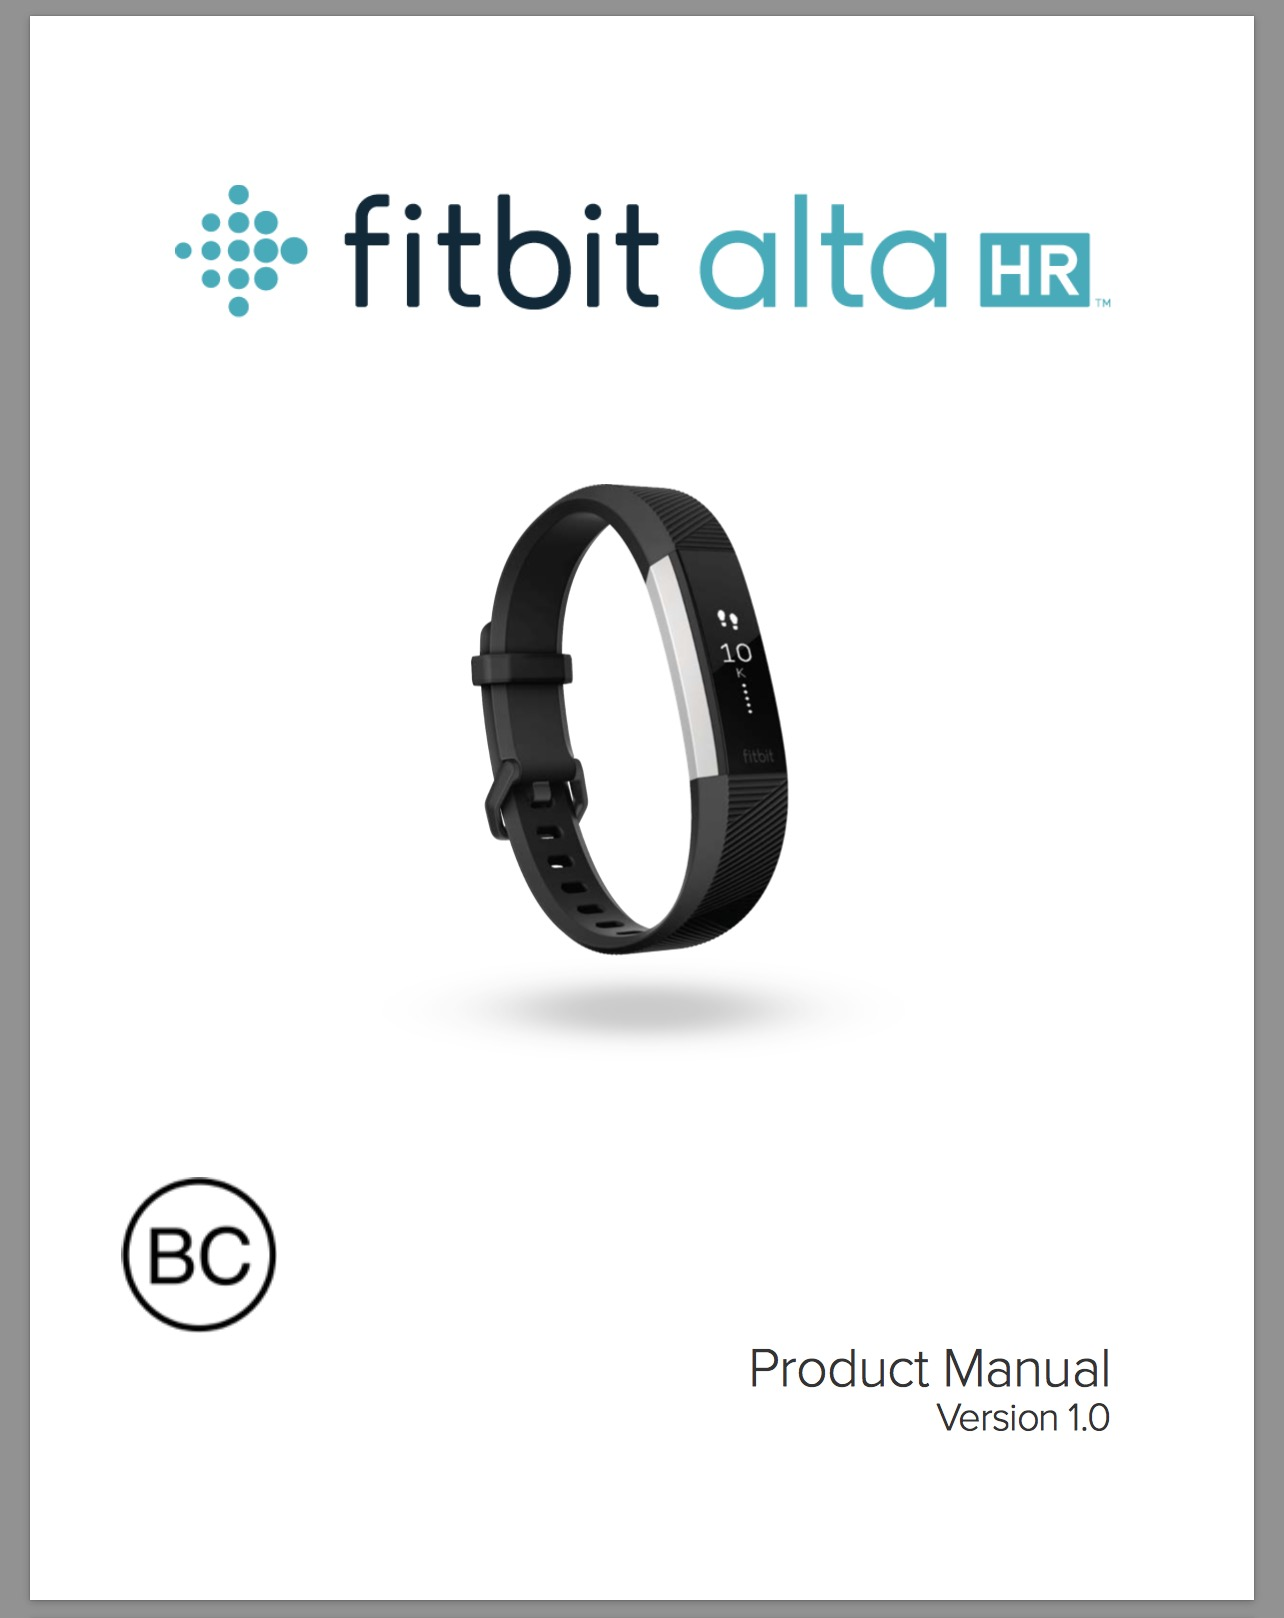 TitaniumGeek Screen Shot 2017 04 30 at 16.31.35 Fitbit Alta HR Review   Fitbit's Fire and Forget Activity Tracker Gear Reviews Heart Rate Monitors Running  steps sleep tracker sleep cycle Sleep optical HRM Optical HR Hydration HRM fluids fitbit hrm Fitbit Alta Fitbit activity tracker   Image of Screen Shot 2017 04 30 at 16.31.35